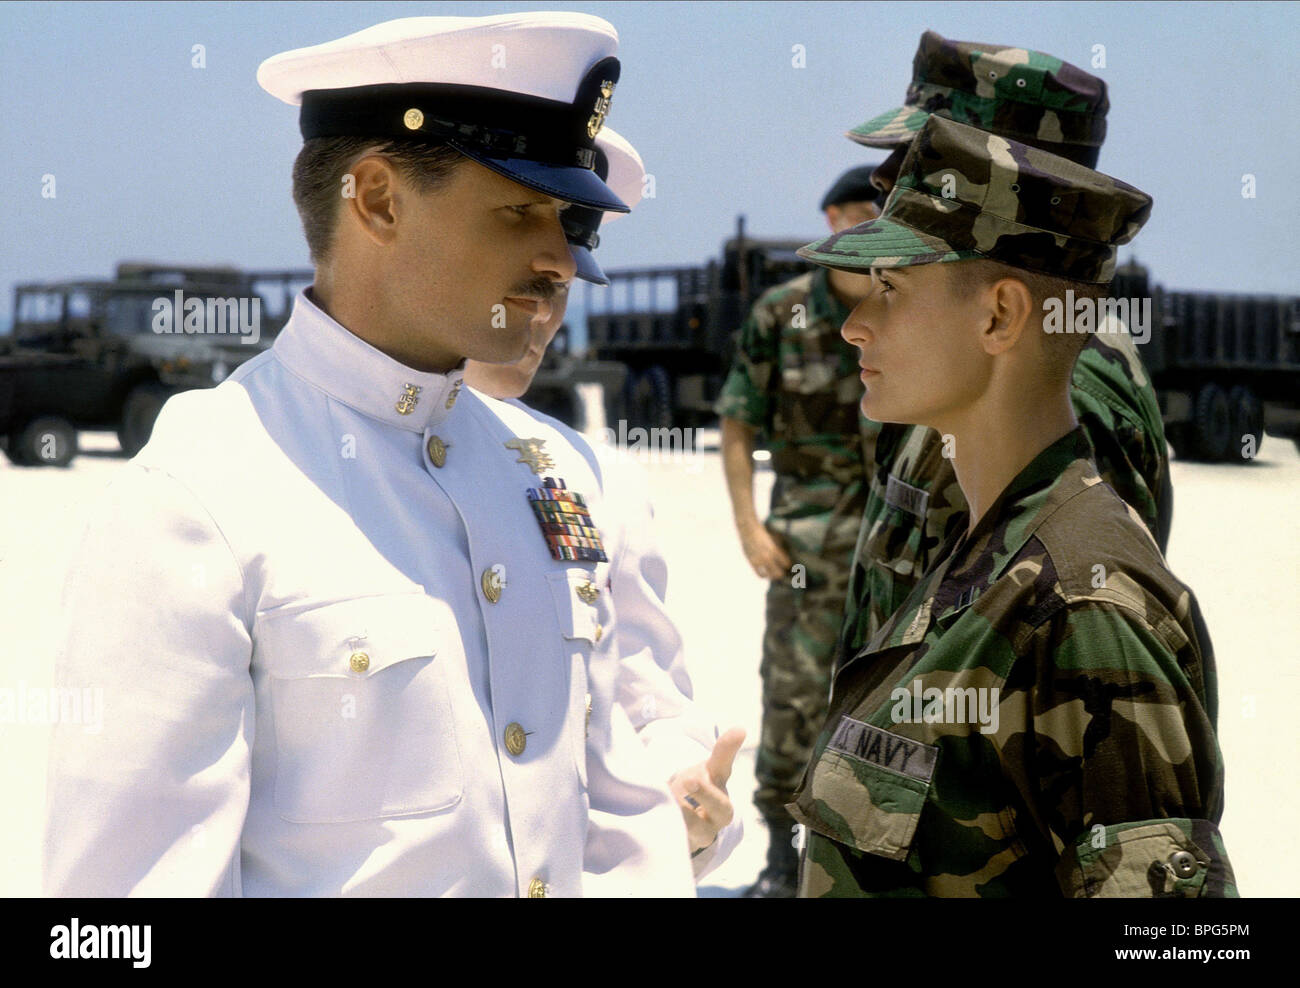 an analysis of gi jane a hollywood movie An analysis of the film, gi jane pages 3 words 1,789 view full essay more essays like this: role of women, g i jane, the abortion myth, accepting women.